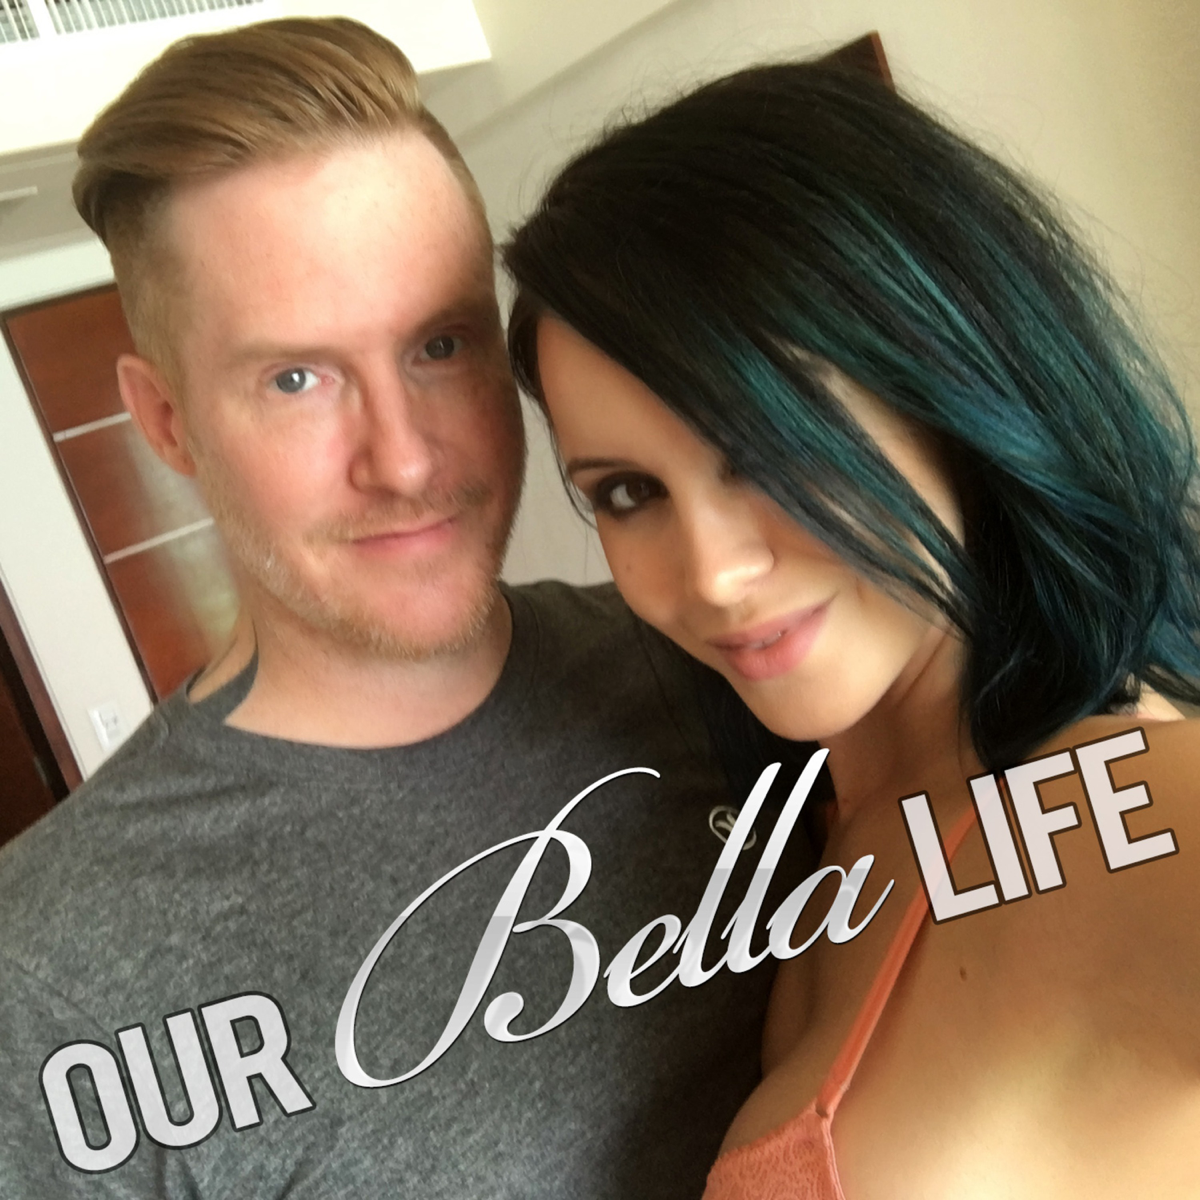 Ourbellalife